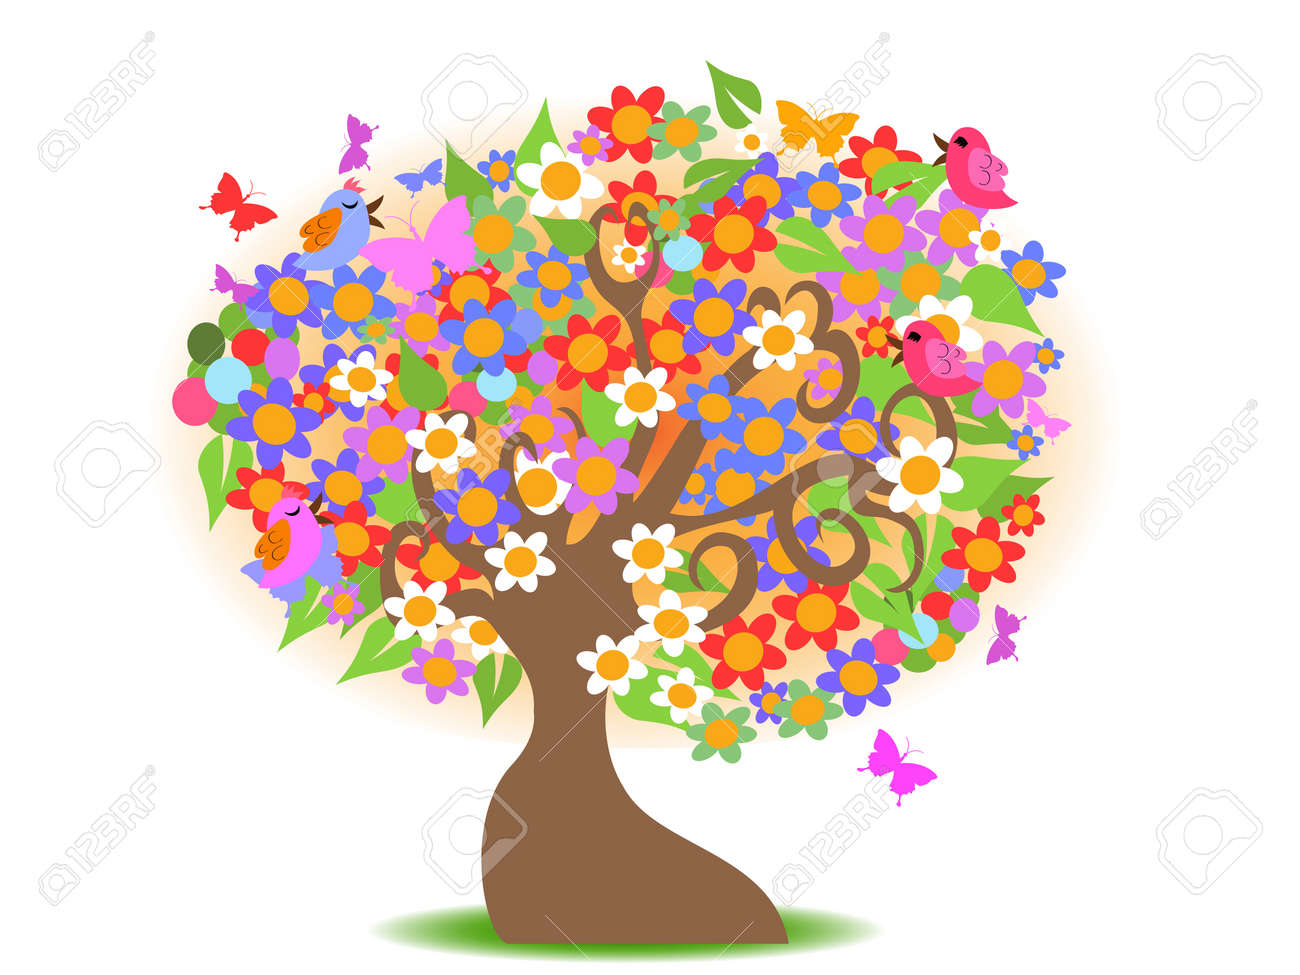 Spring Tree With Colorful Flowers For Design Royalty Free Cliparts